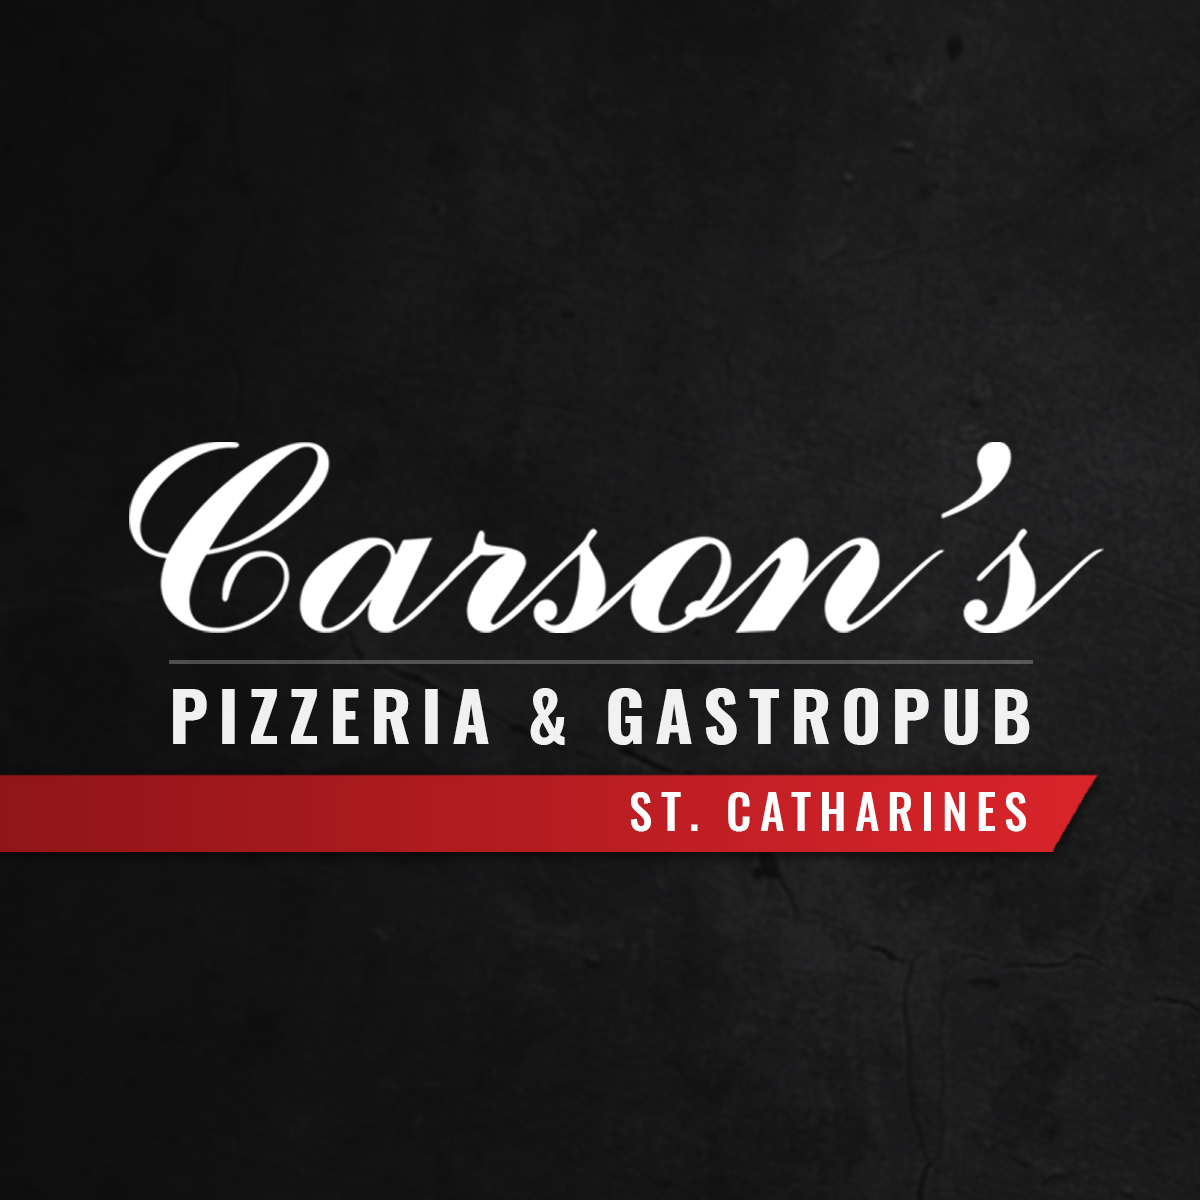 Carson's Pizzeria and Gastropub St. Catharines